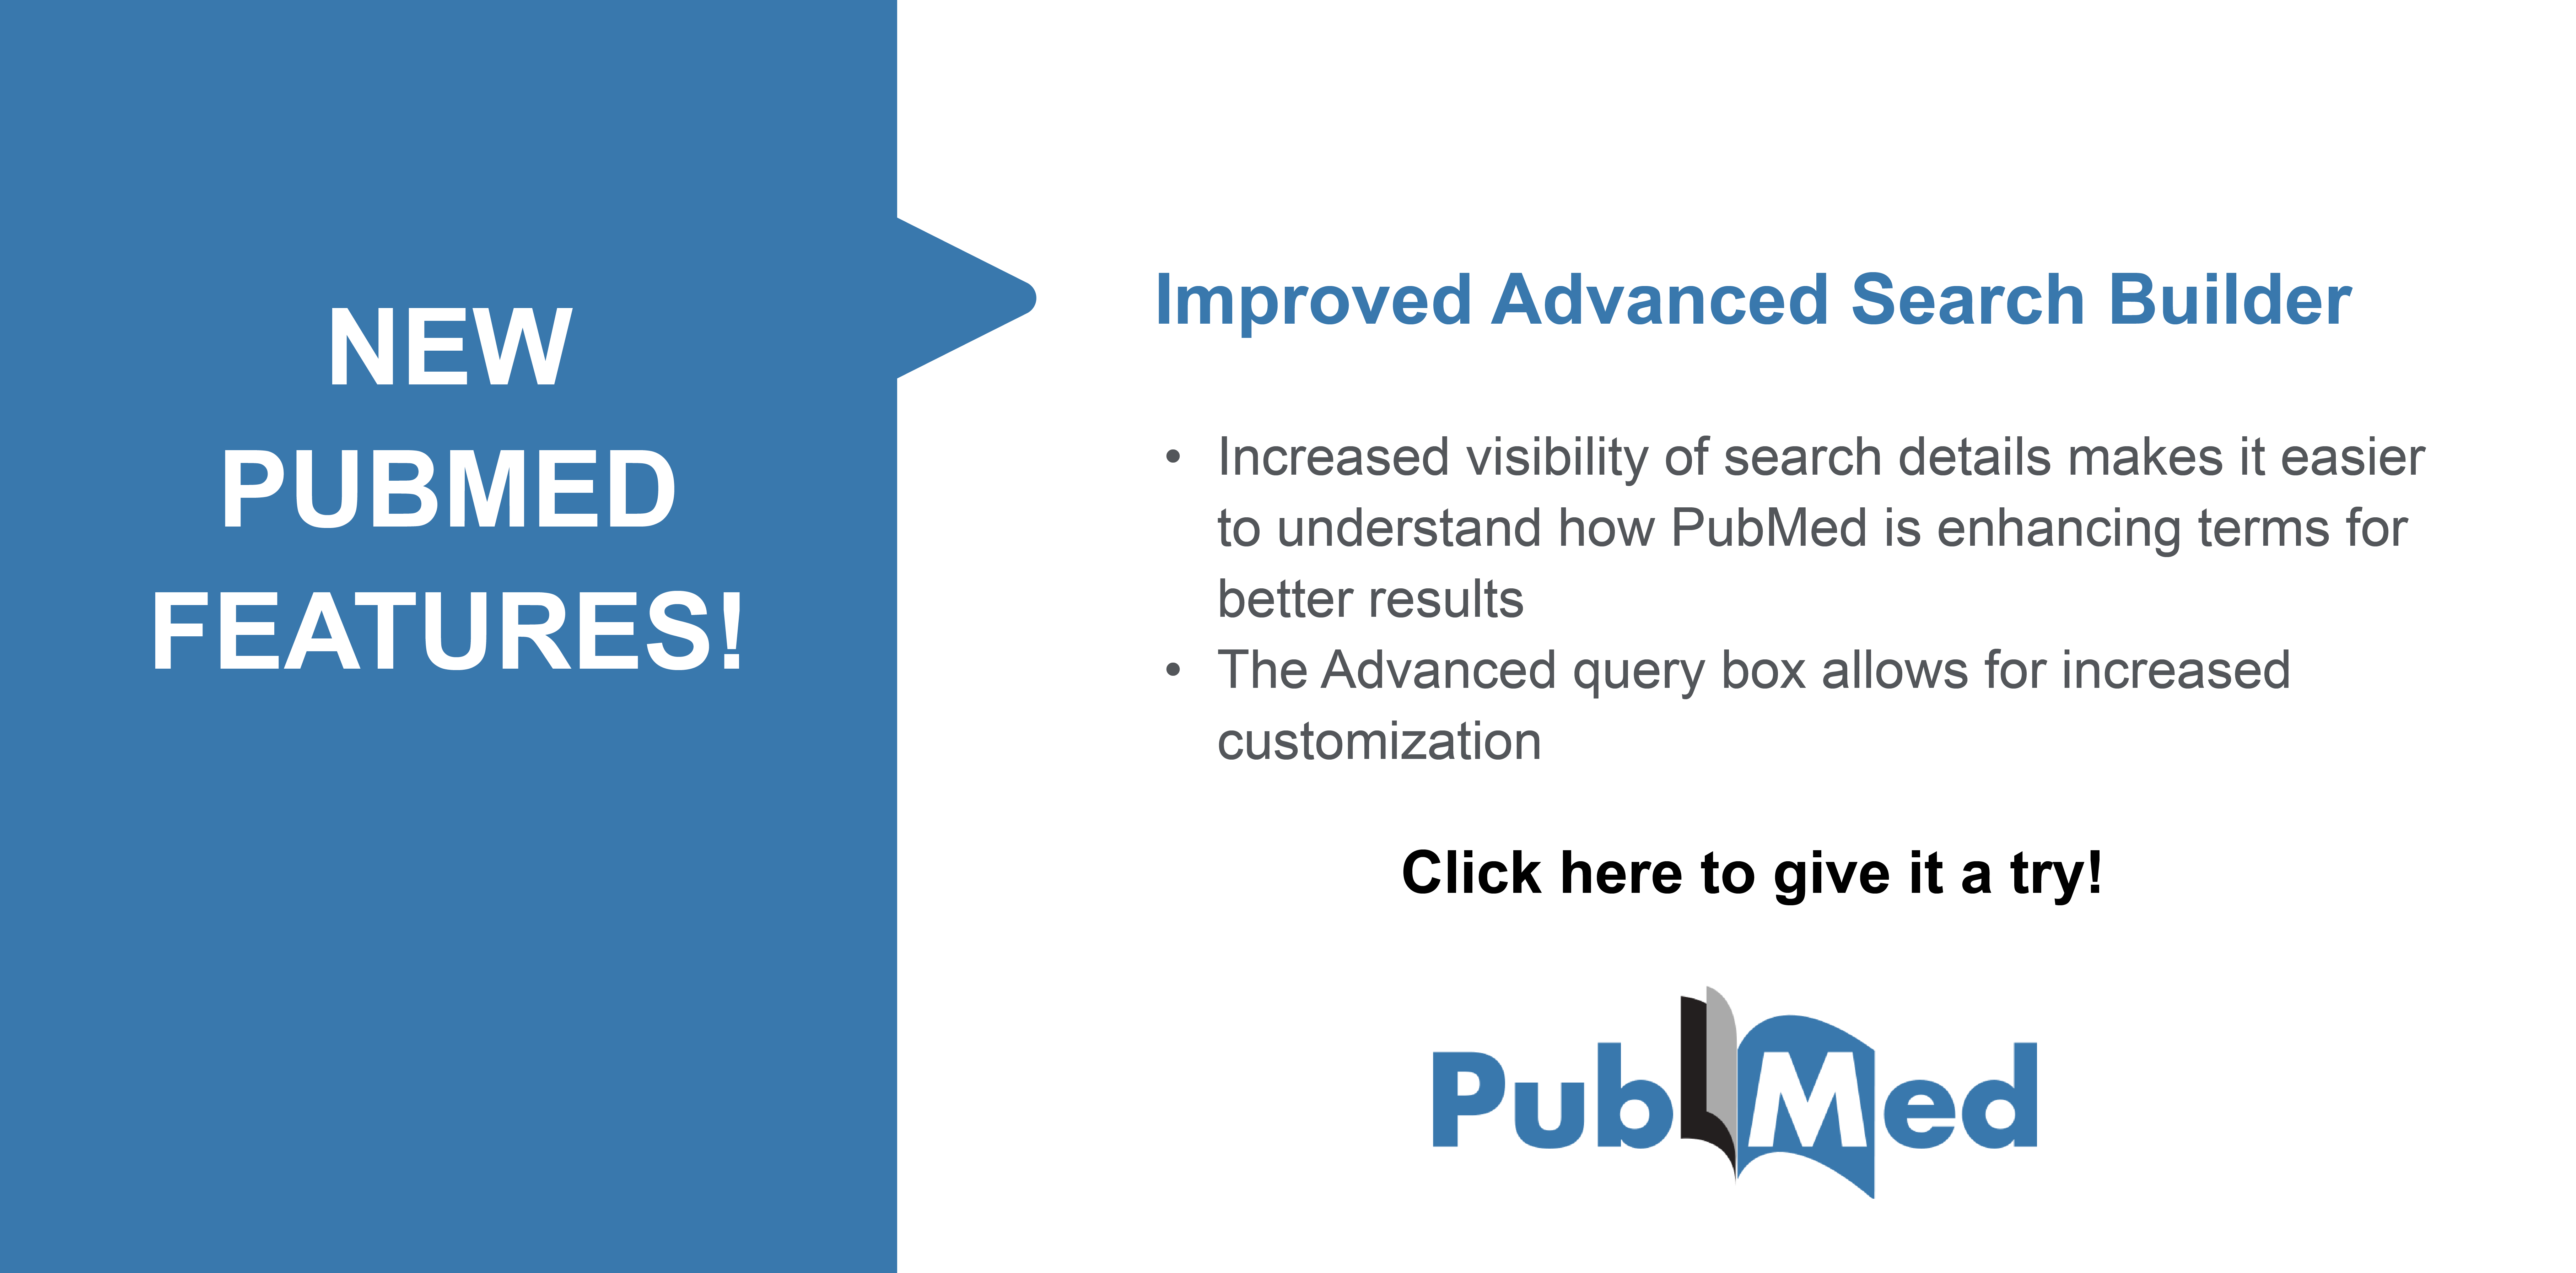 Click here to explore the new PubMed and its improved Advanced Search capabilities